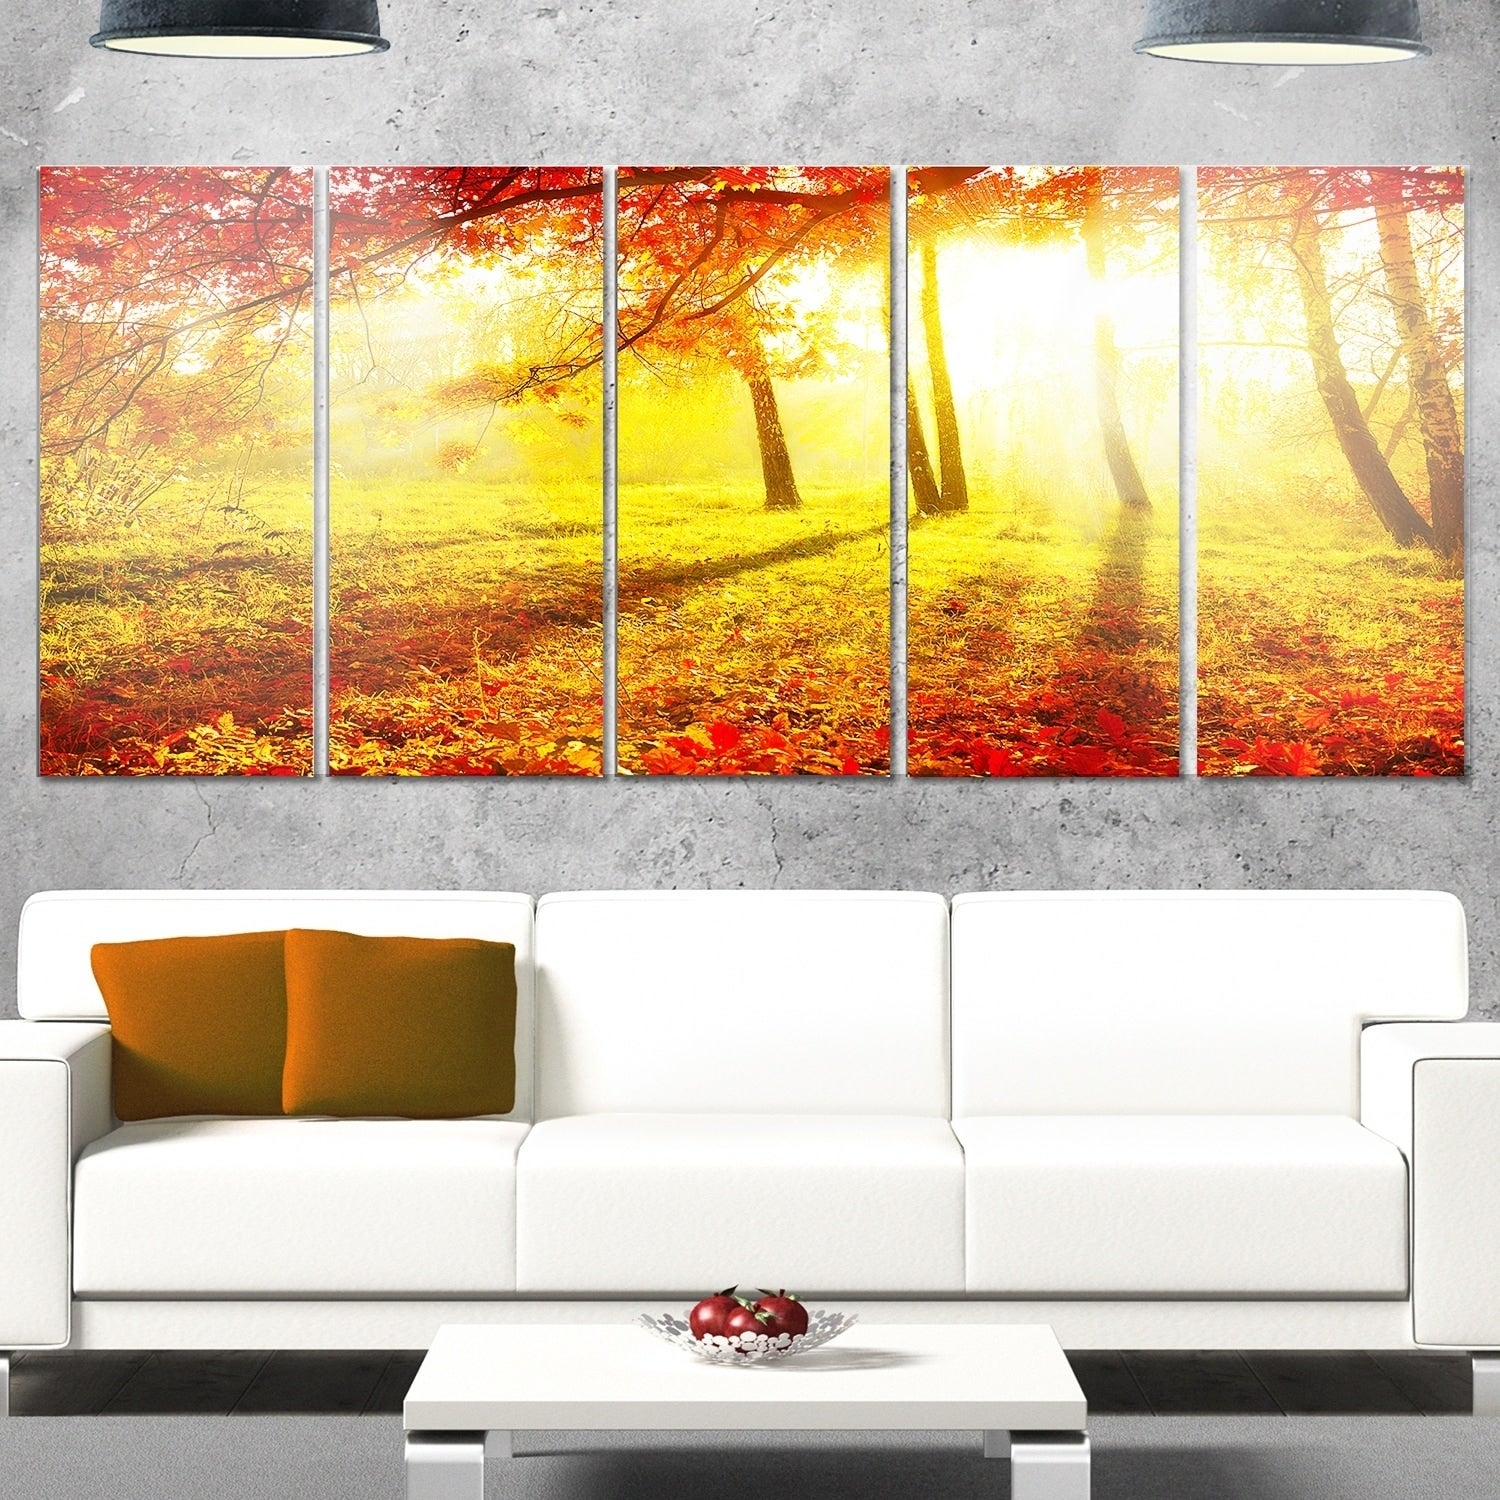 Colorful Metal Willow Tree Wall Art Image Collection - The Wall Art ...